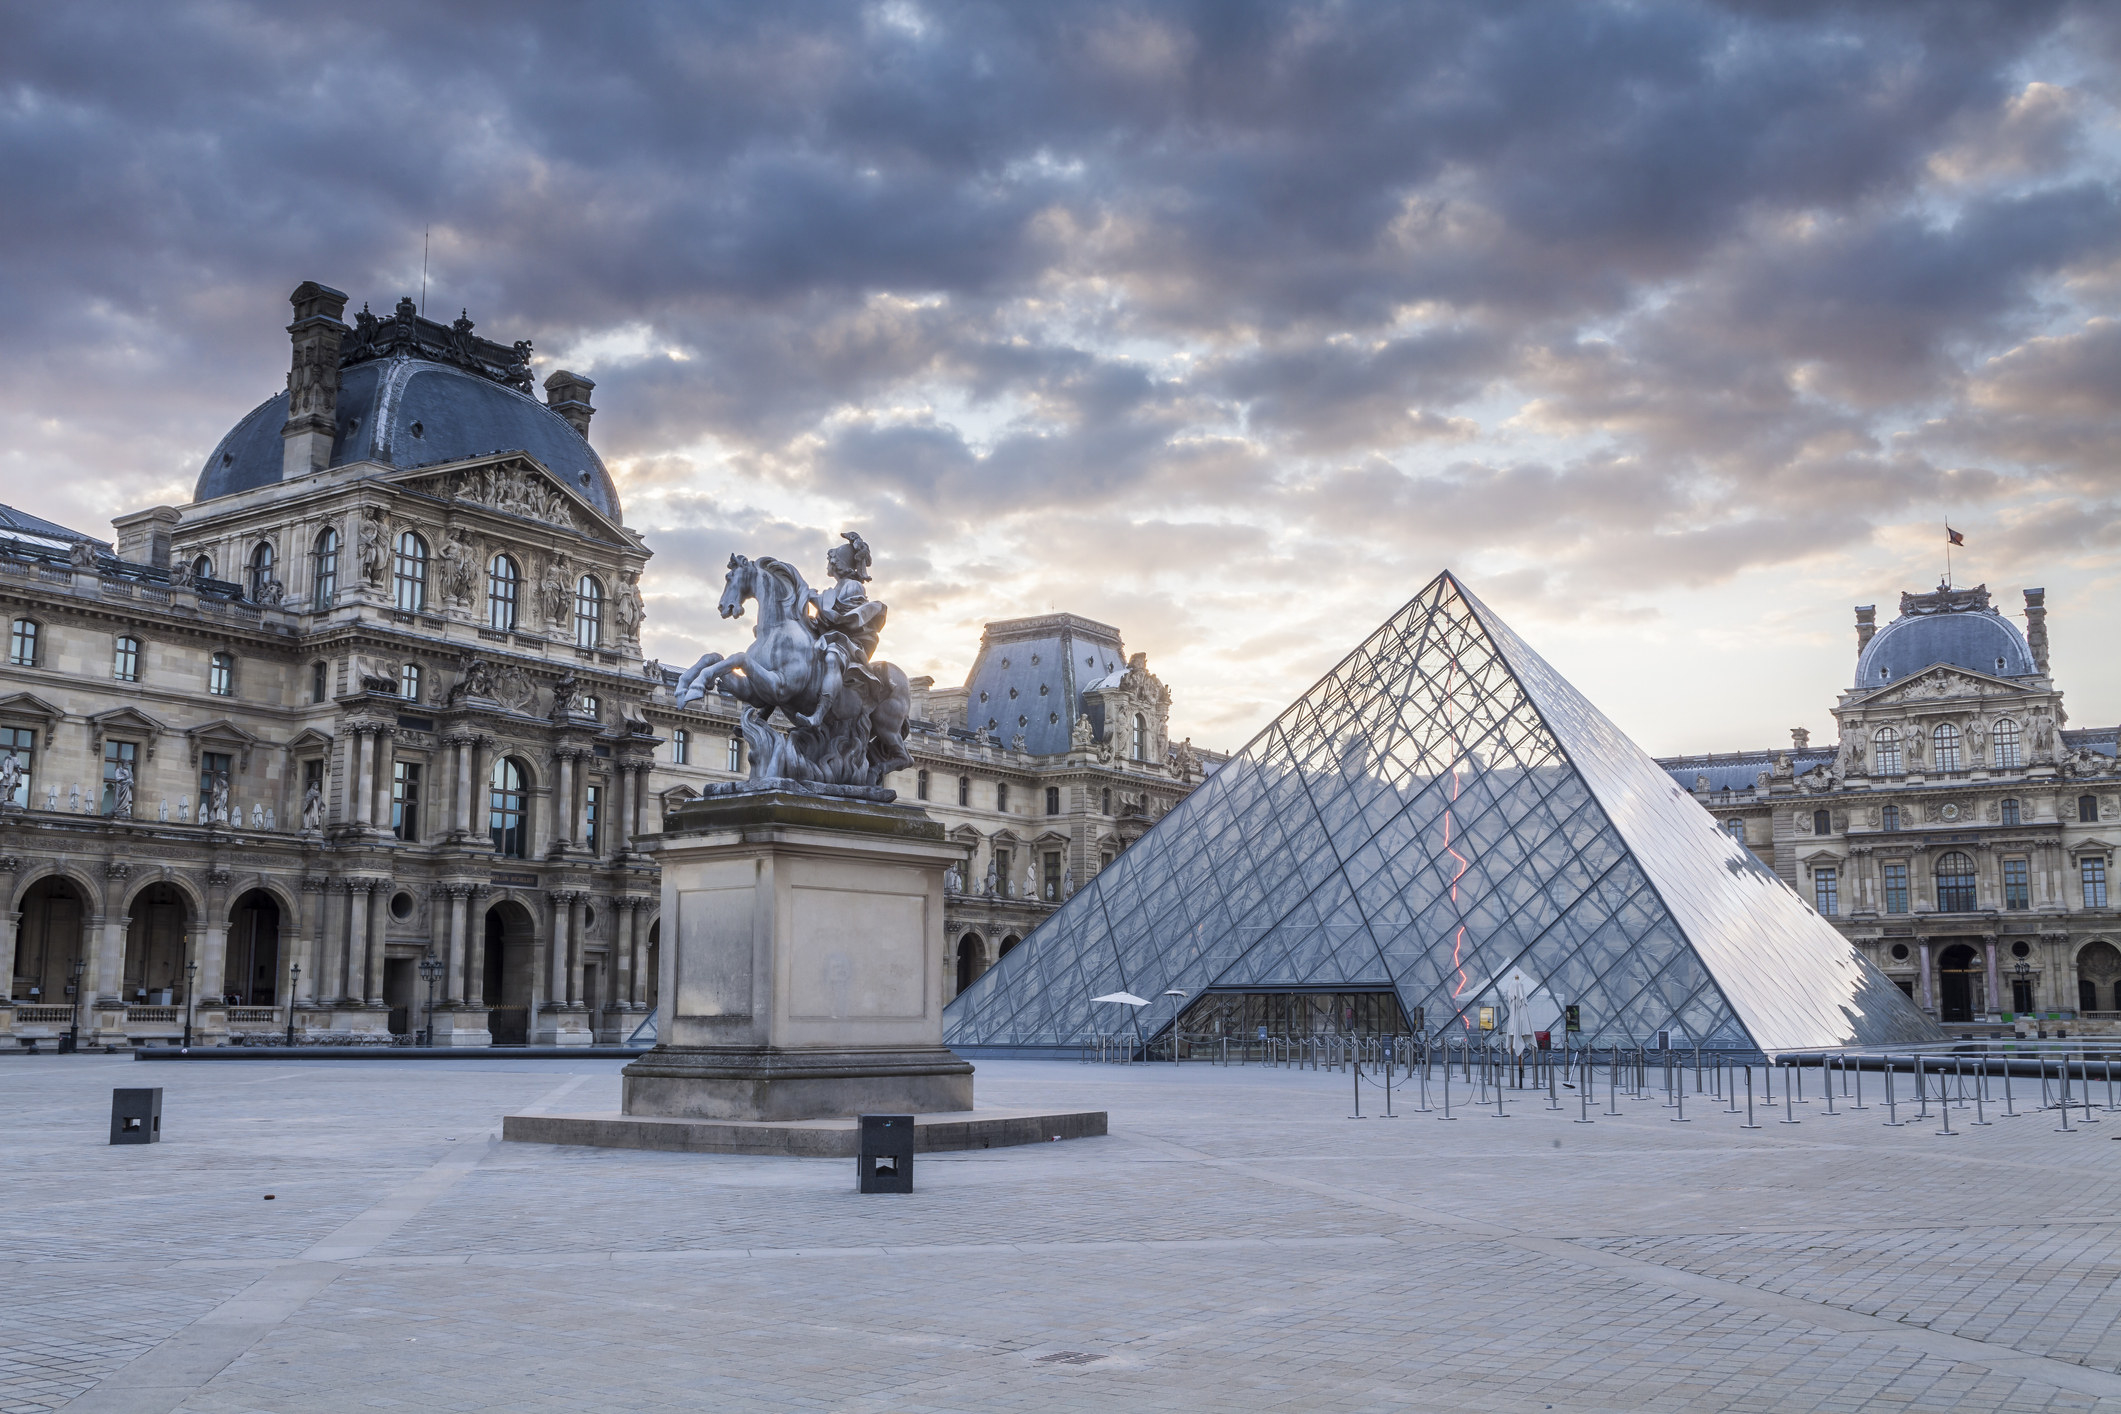 The outside of the Louvre in Paris.